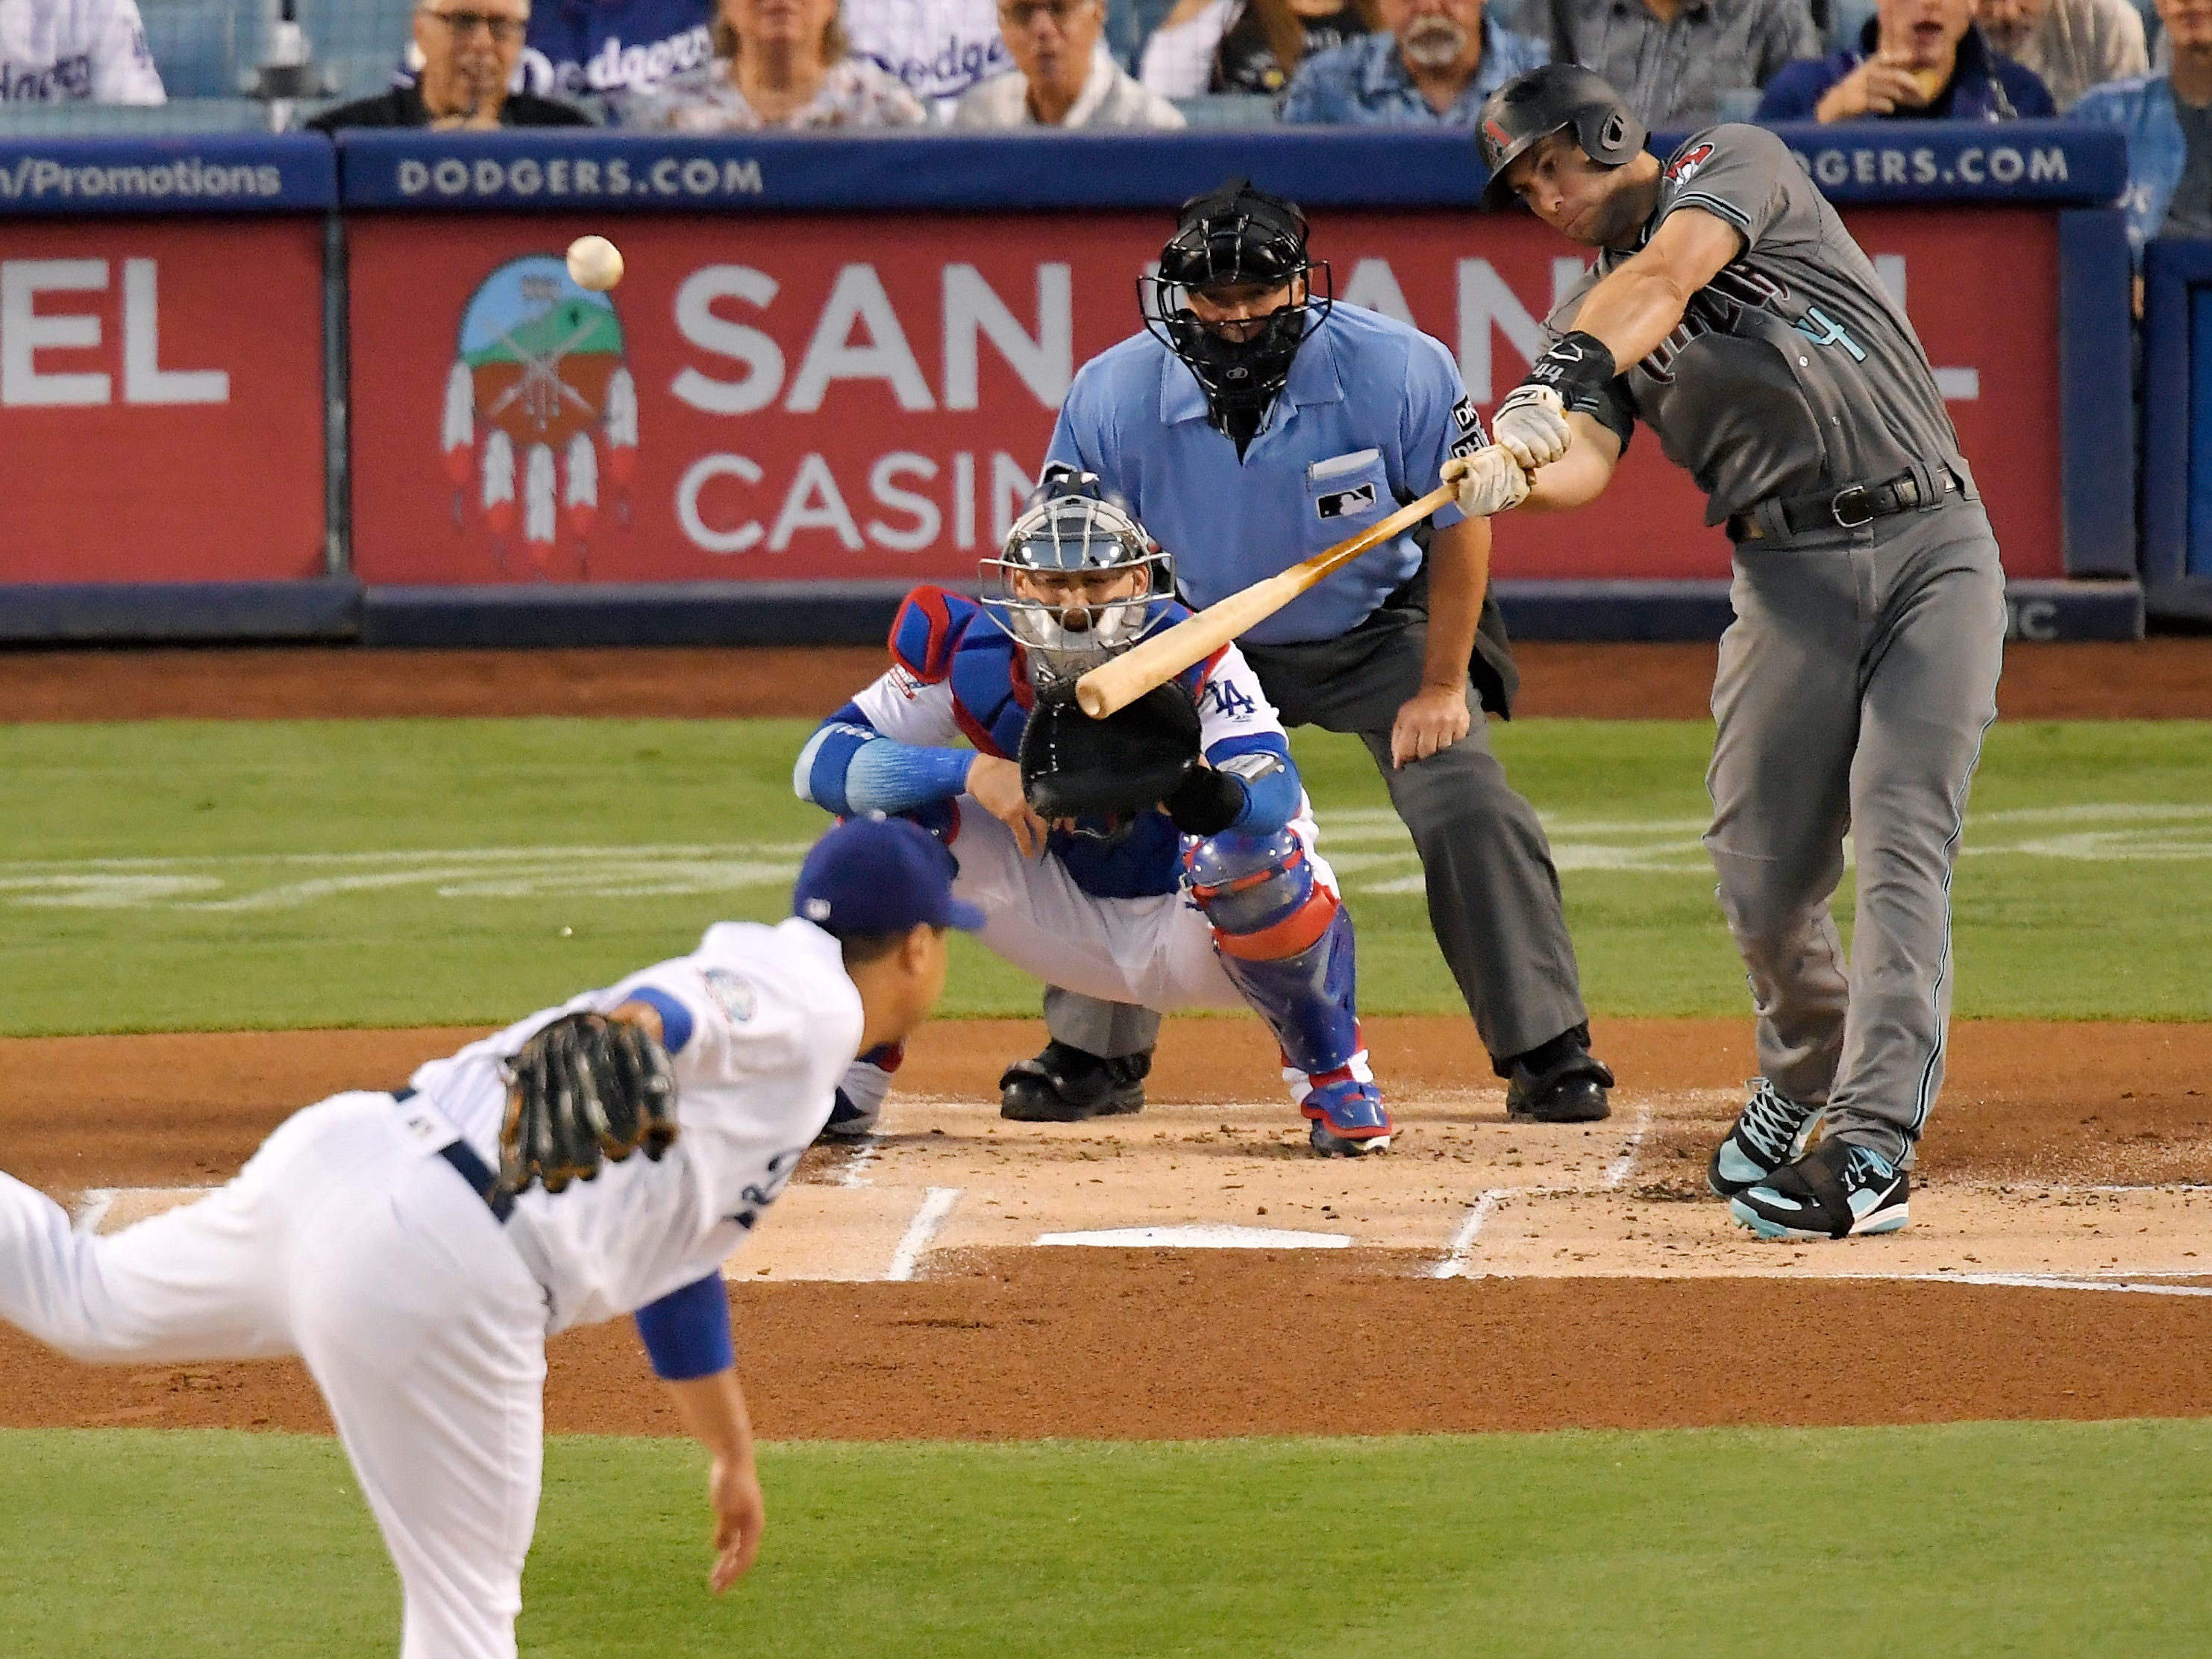 Arizona Diamondbacks' Paul Goldschmidt, right, hits a two-run home run as Los Angeles Dodgers starting pitcher Hyun-Jin Ryu, left, watches with catcher Yasmani Grandal, second from left, and home plate umpire Tom Hallion during the first inning of a baseball game Friday, Aug. 31, 2018, in Los Angeles.